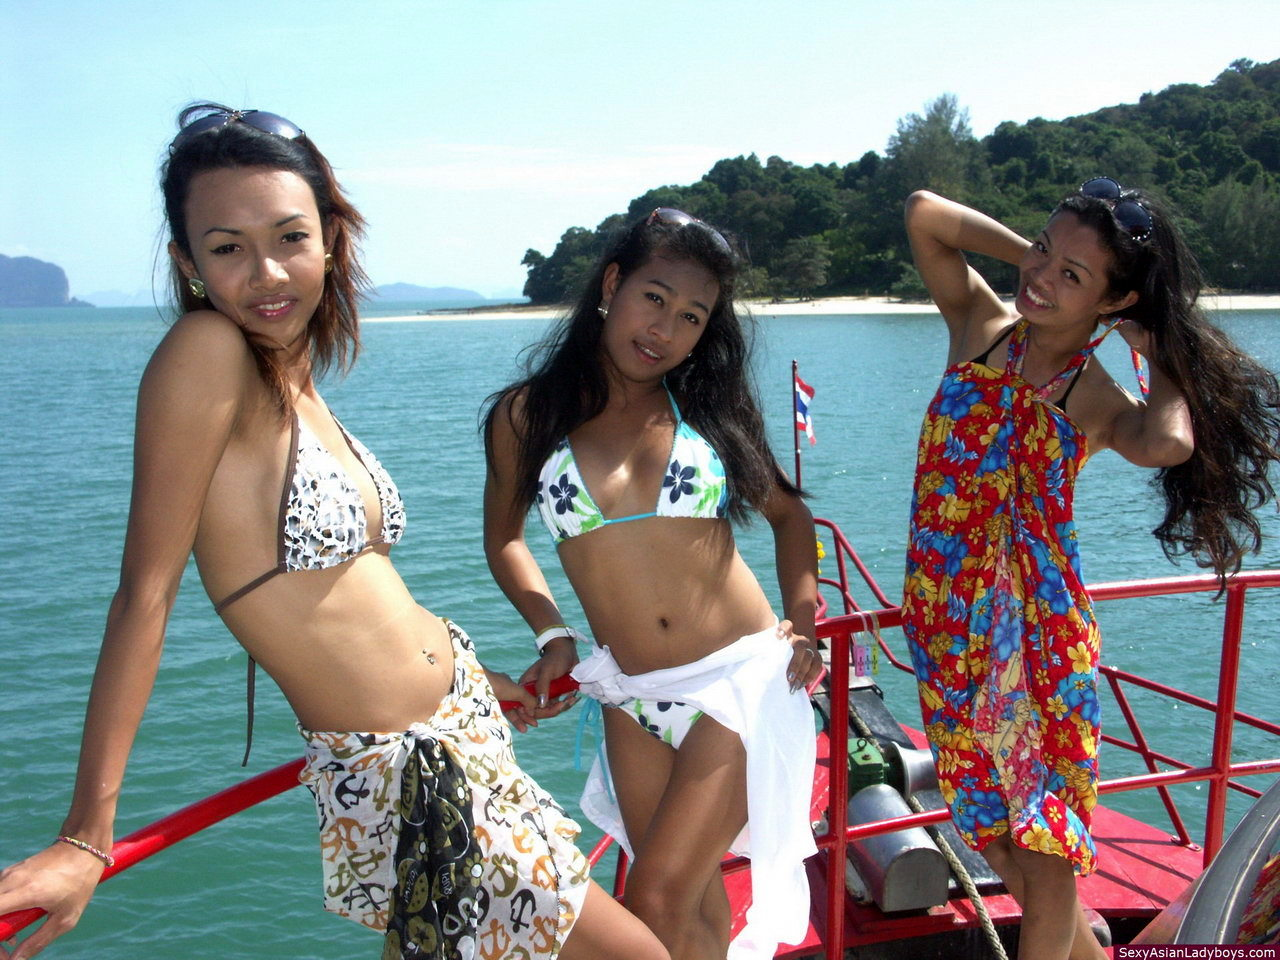 Three Innocent Femboys Guide Us In A Tropical Cruise In The South Of Thailand